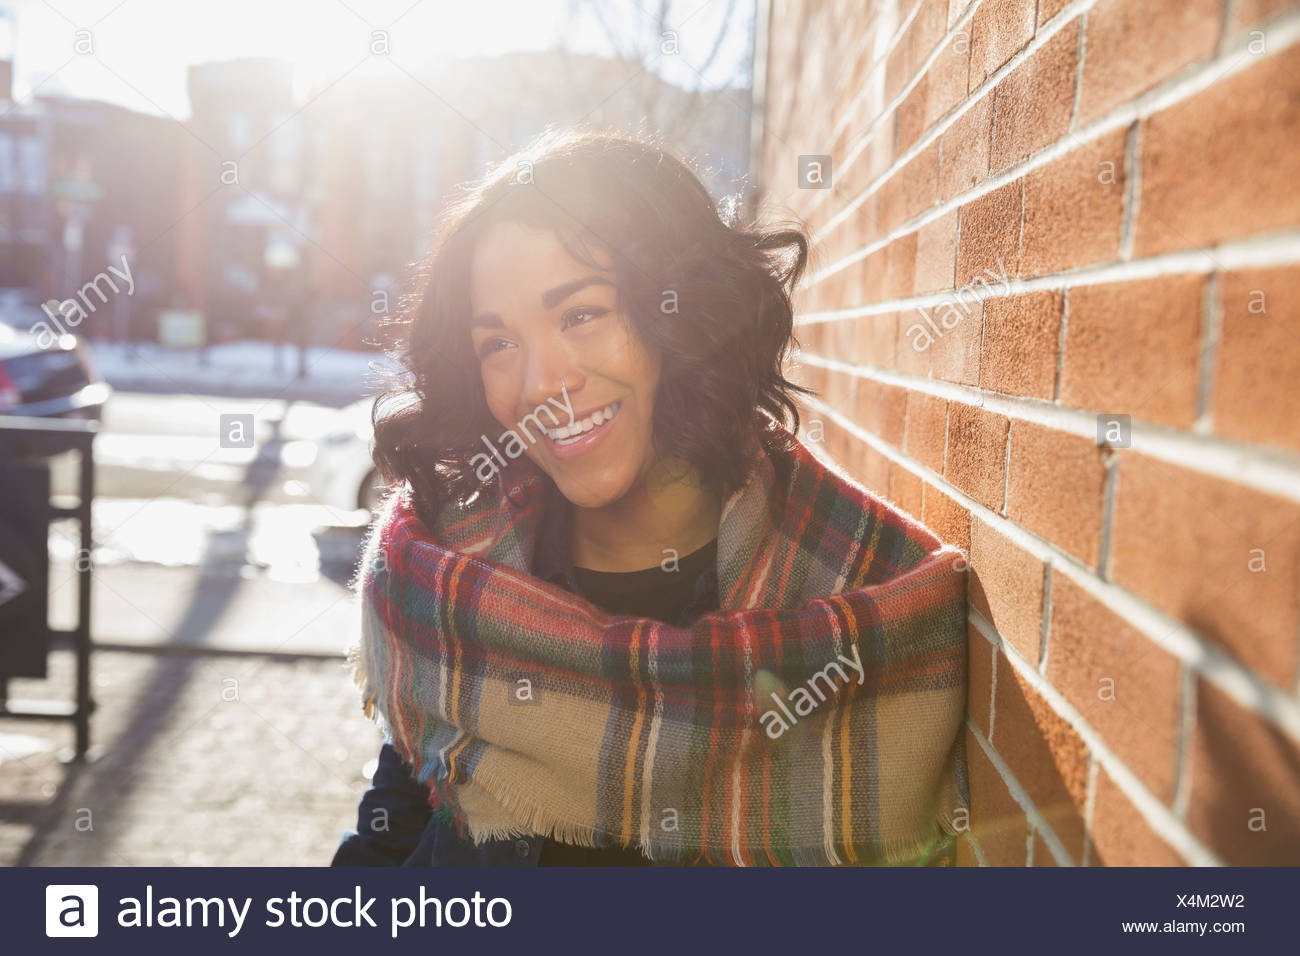 Smiling woman standing by brick wall - Stock Image